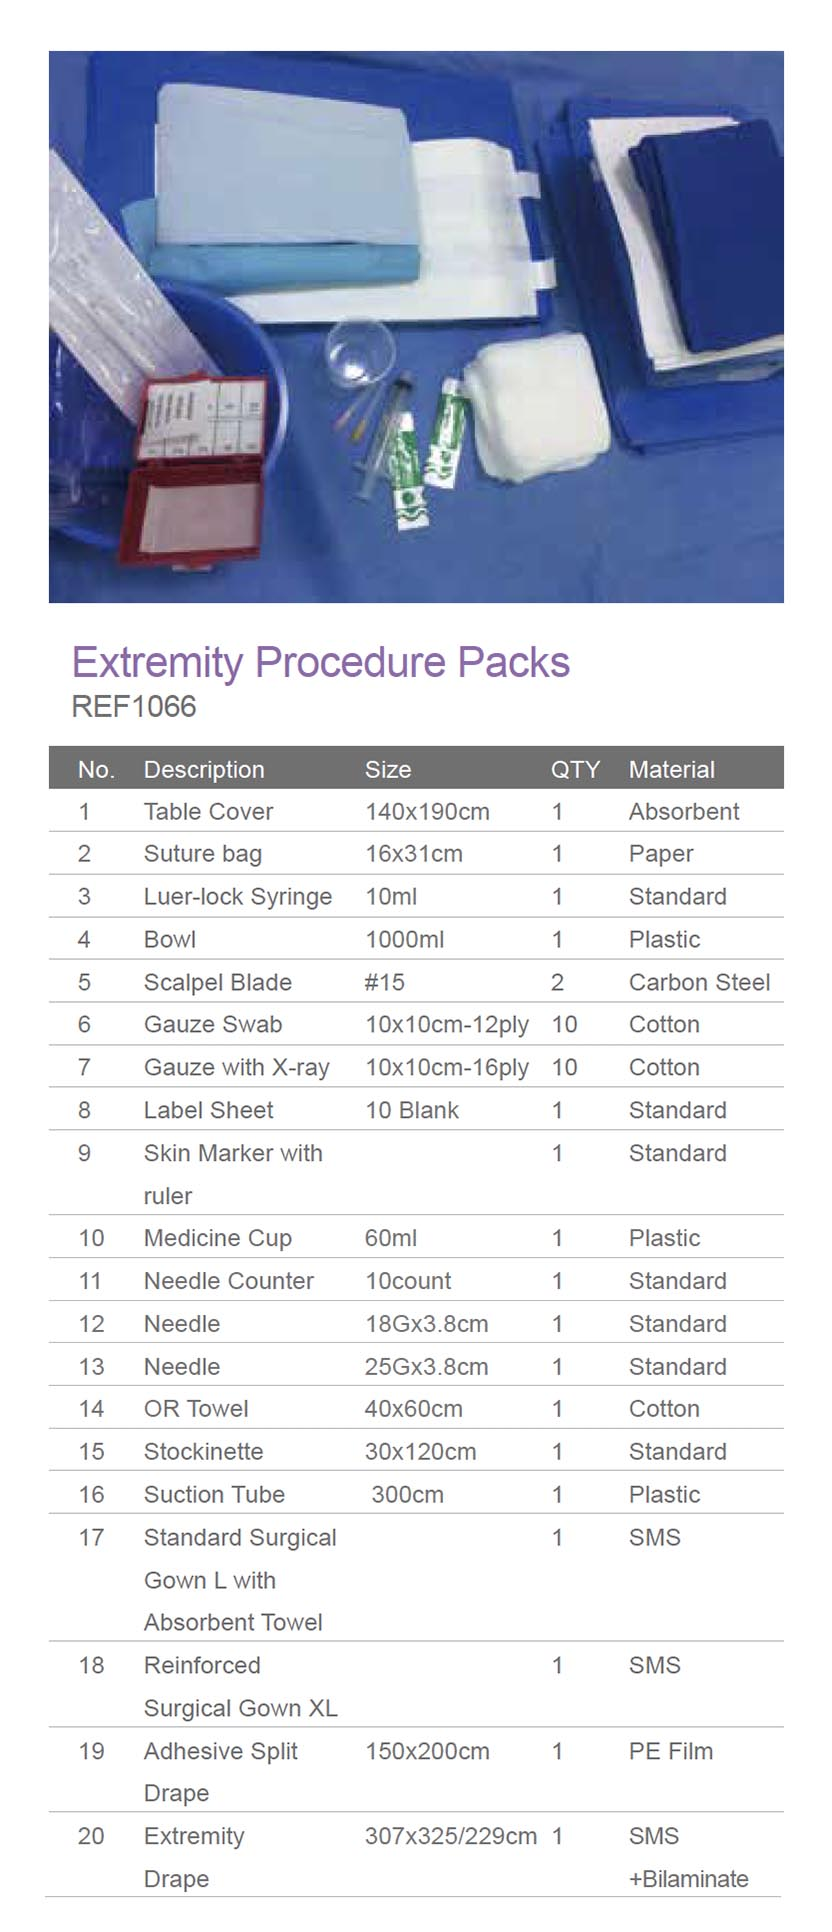 Extremity Procedure Packs REF1066| Customized Procedure Packs - Medical Group Care